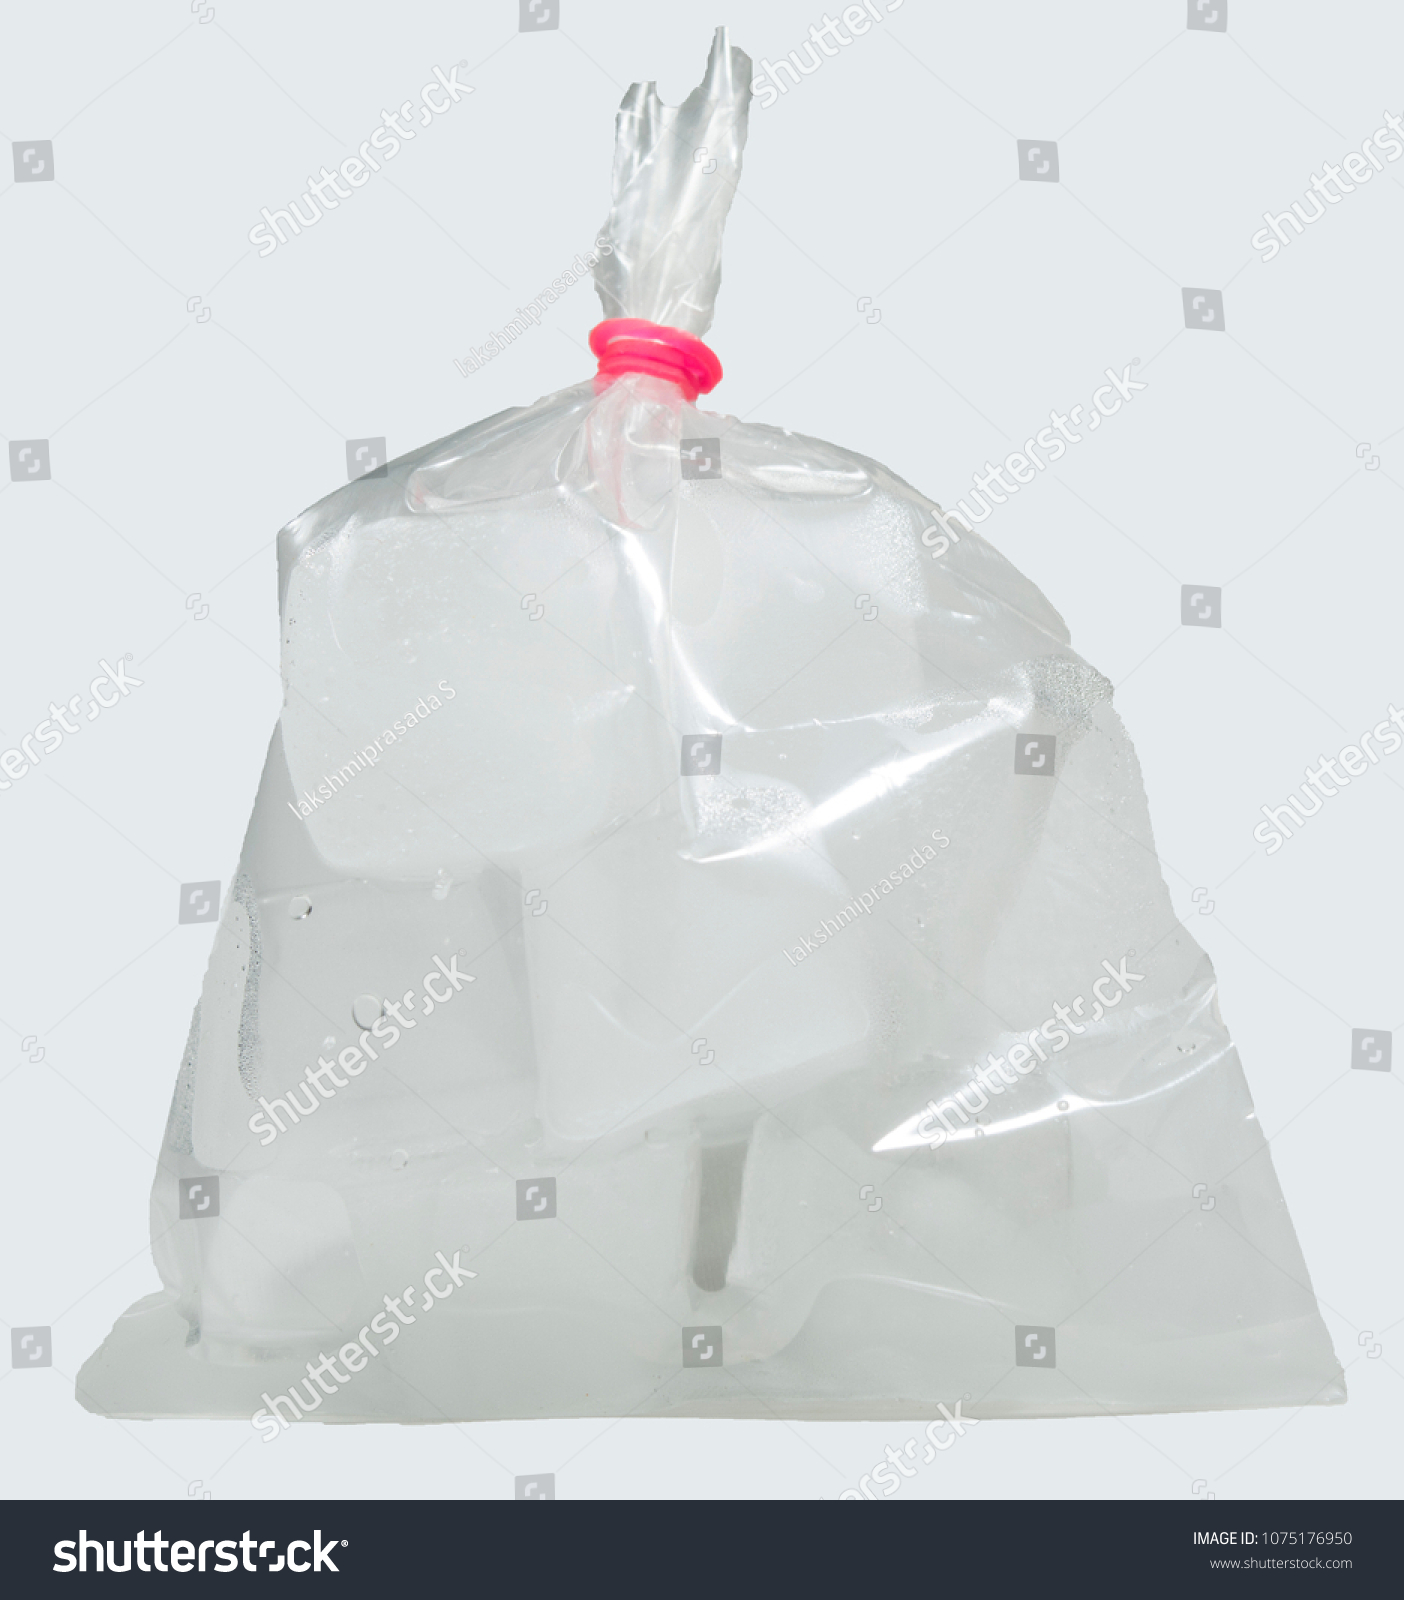 Disposable Ice Cube Bag 100 Pack 2400 Ice Cubes 100 Bags Free Shipping